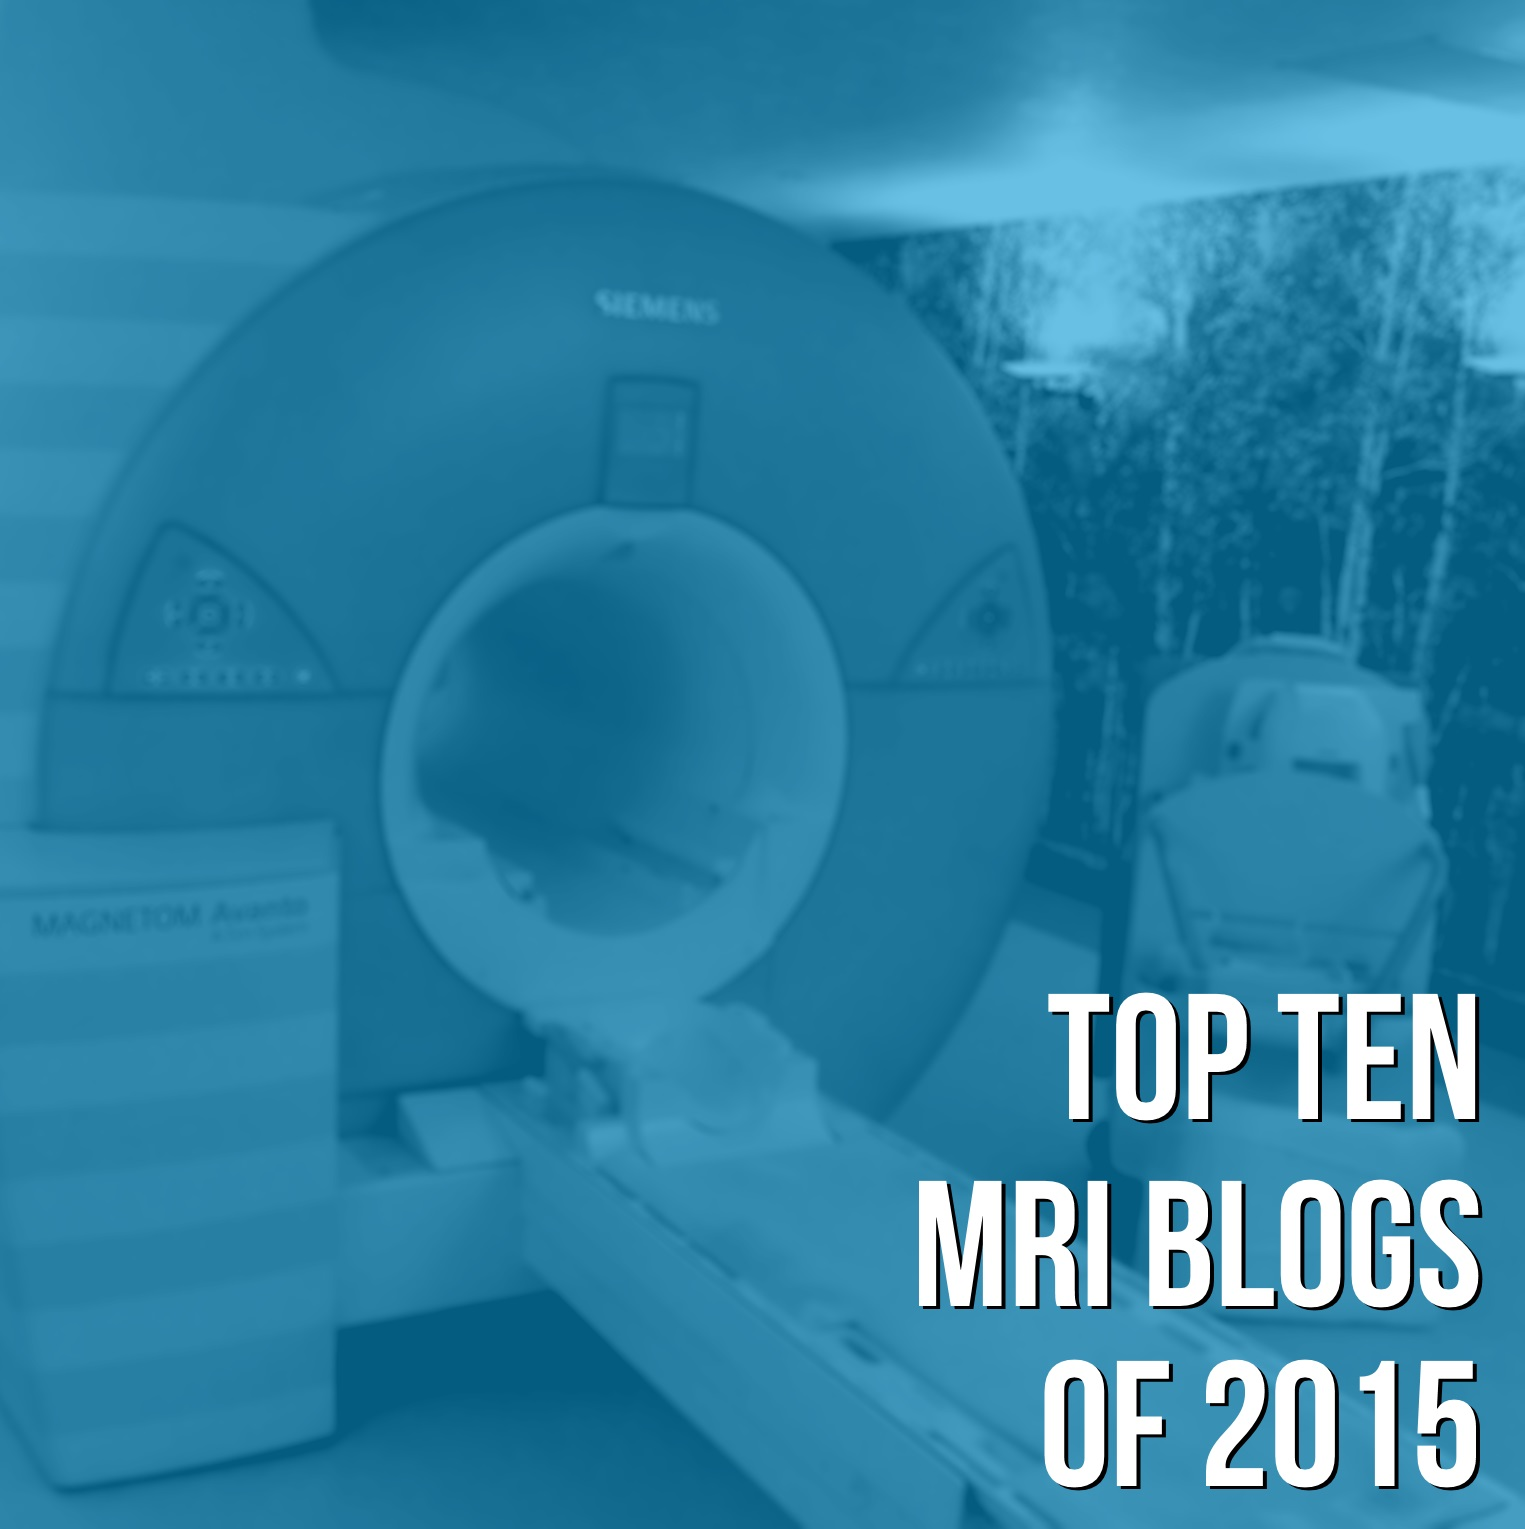 Best_MRI_Blogs_2015.jpg